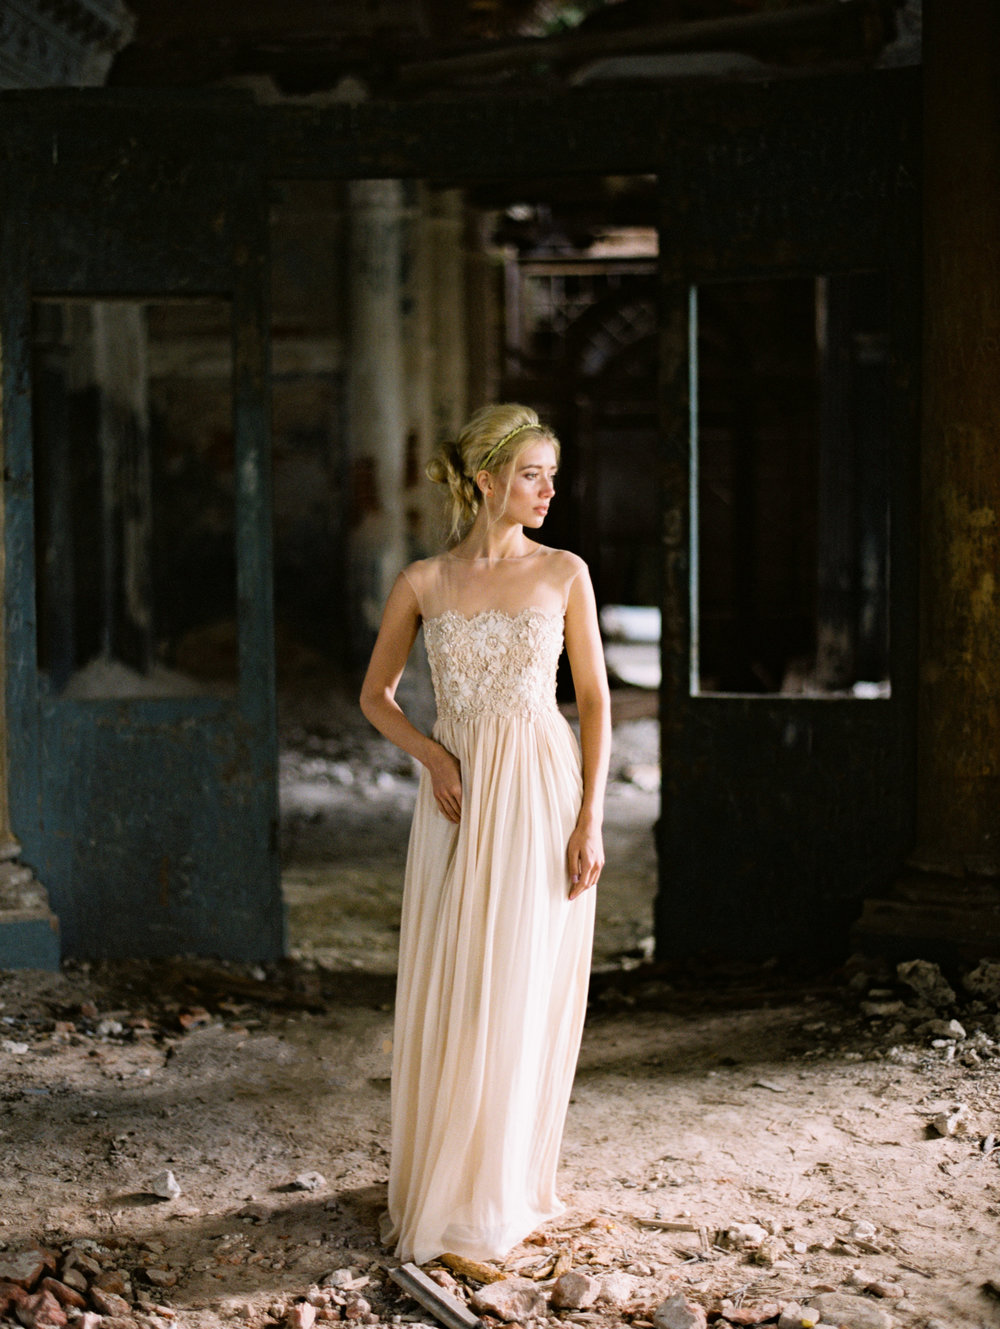 wedding-styled-shoot-russia-inspiration-elena-pavlova-photography-metamorphoses-orpheus-eurydice (14).jpg